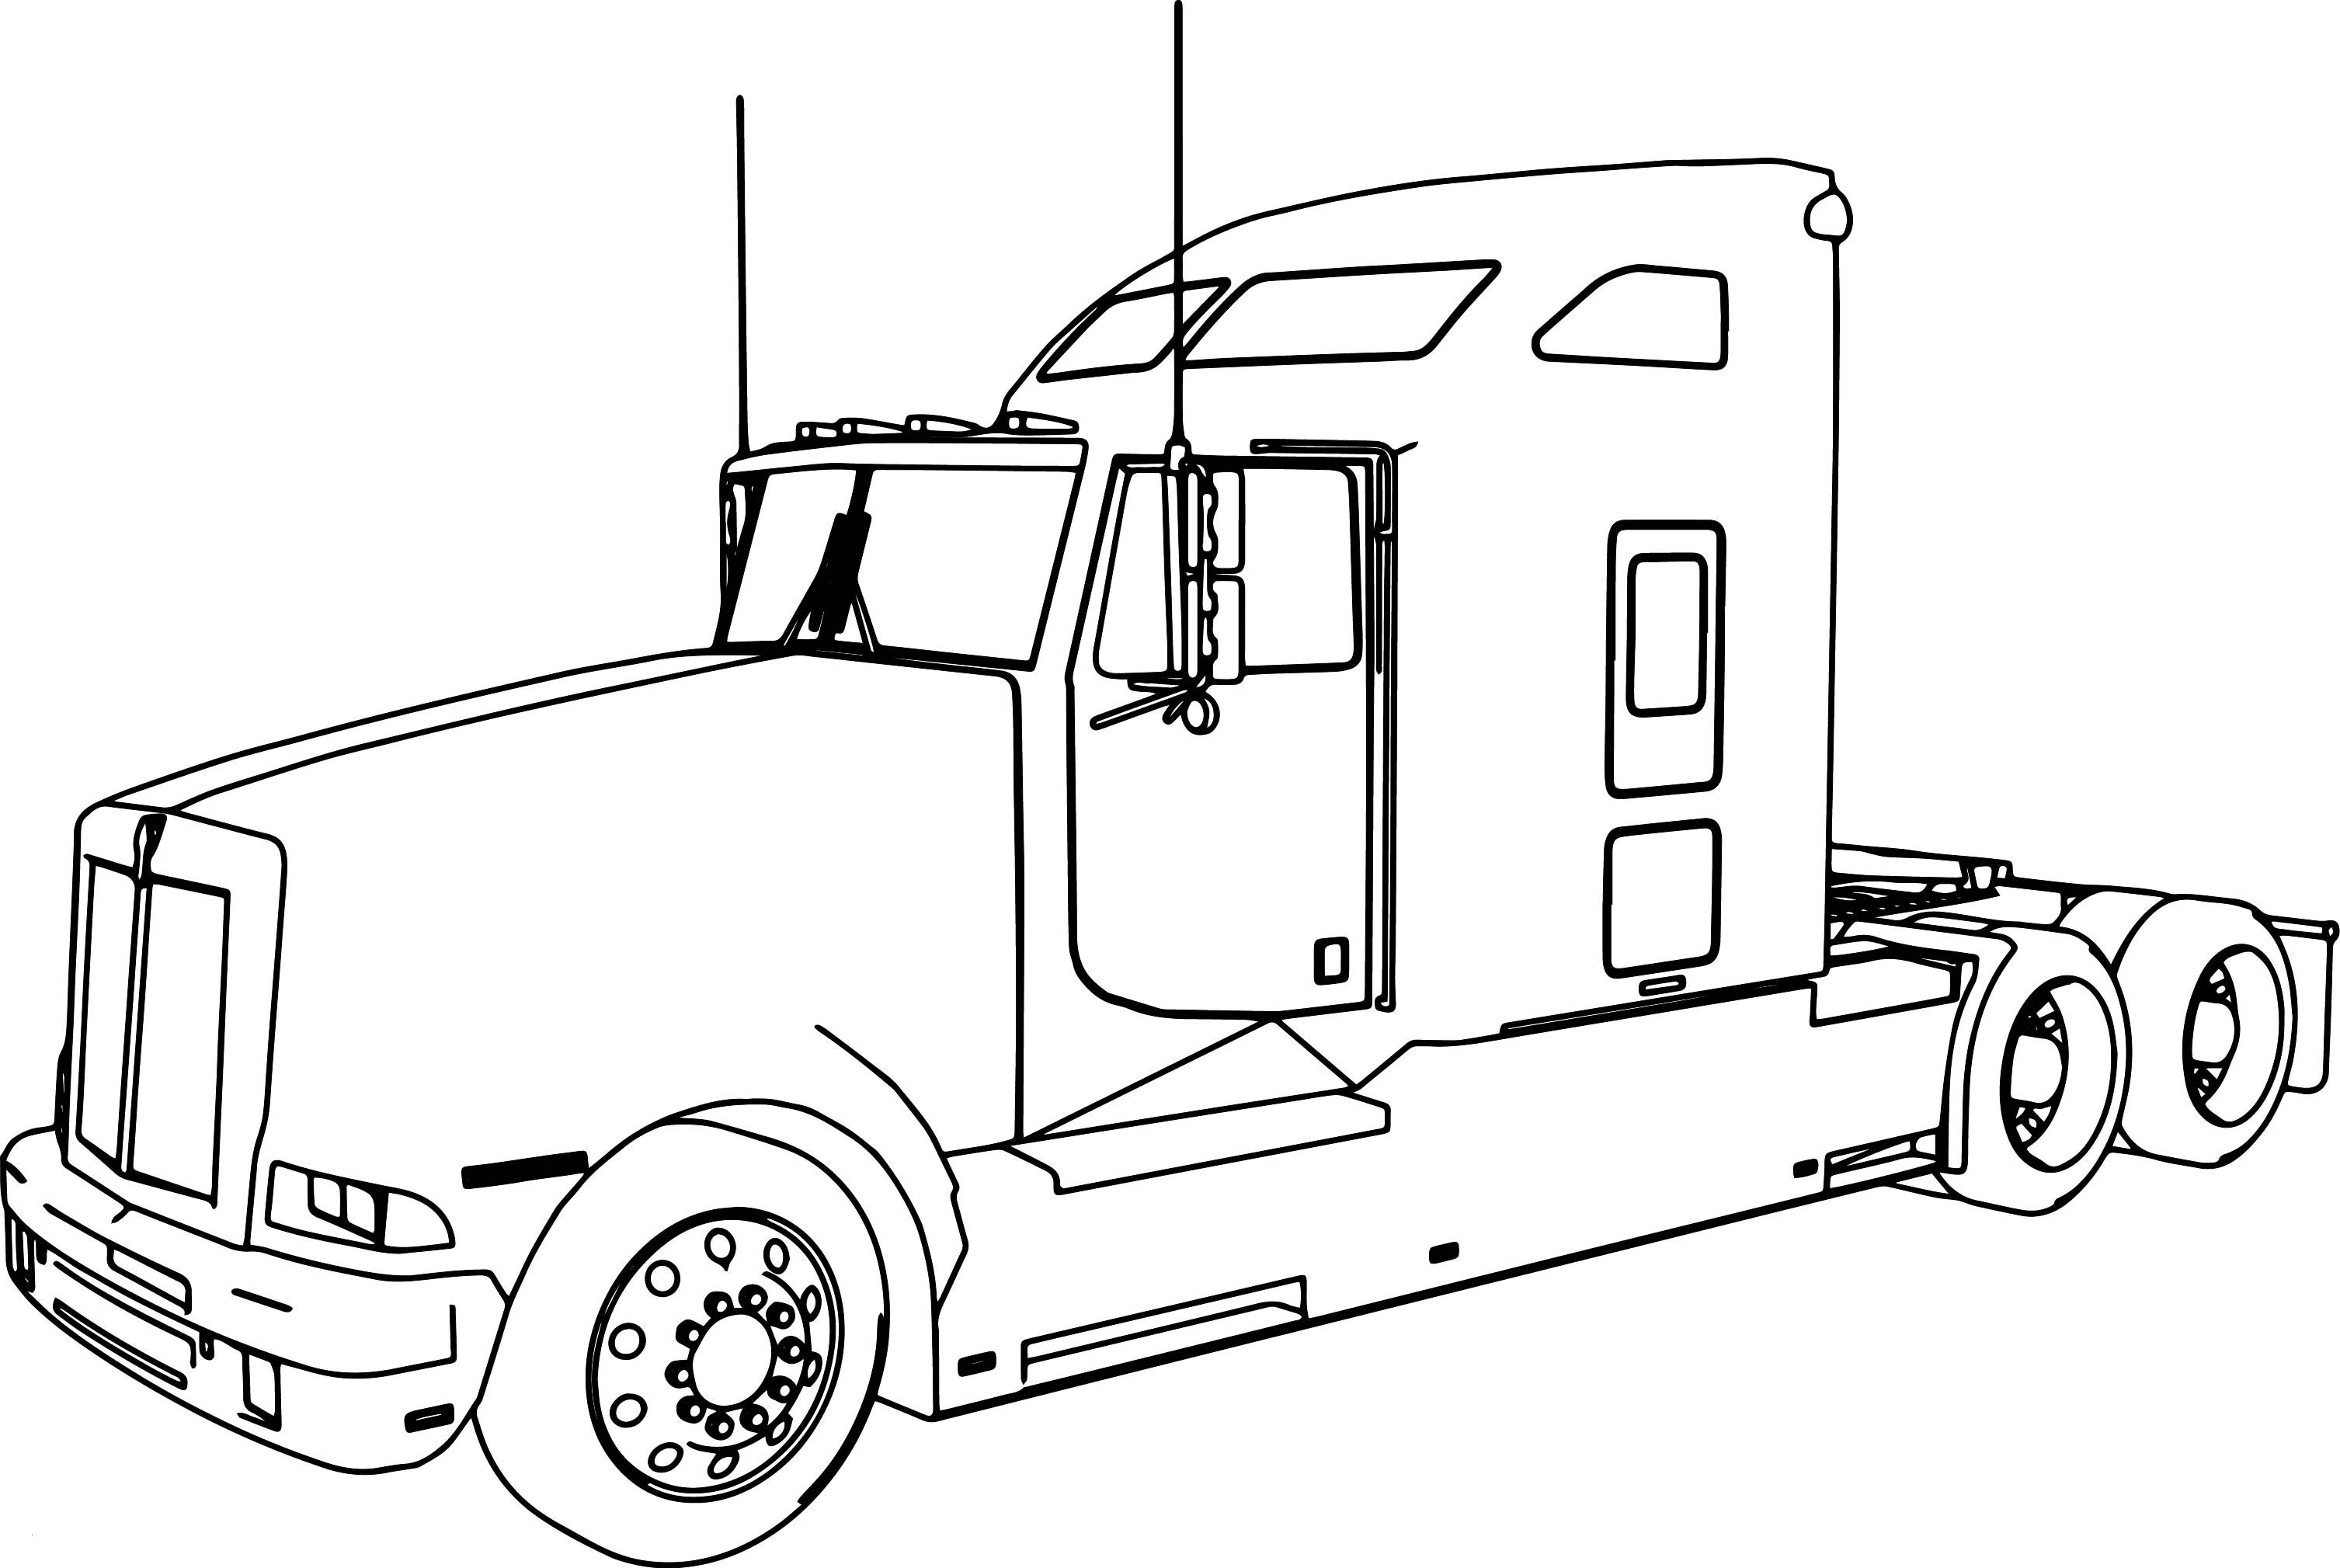 Truck and Trailer Coloring Pages  Collection 3c - Free Download